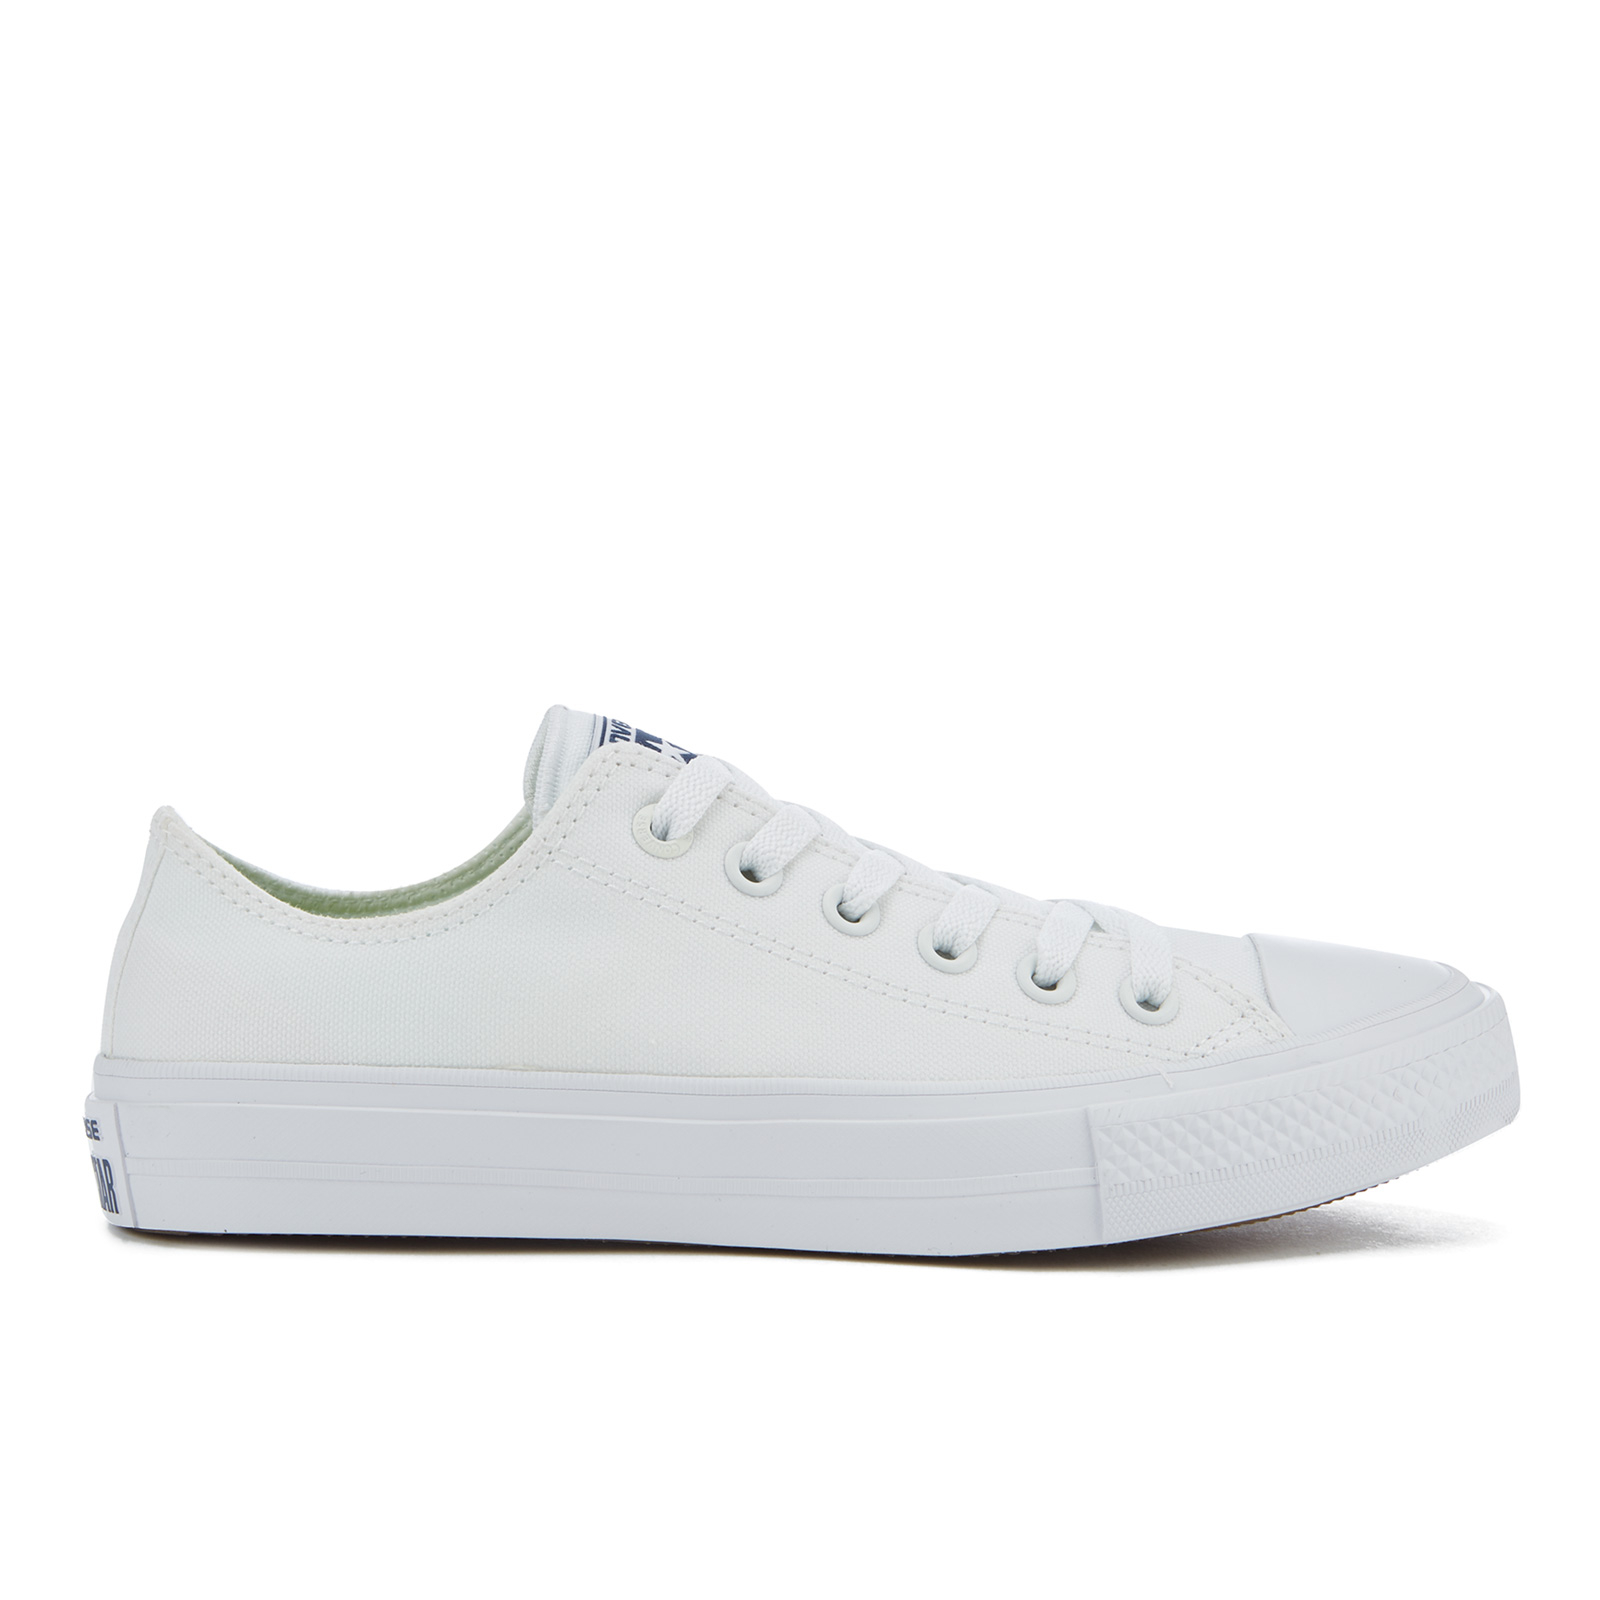 Converse Chuck Taylor All Star II Ox Trainers WhiteWhiteNavy